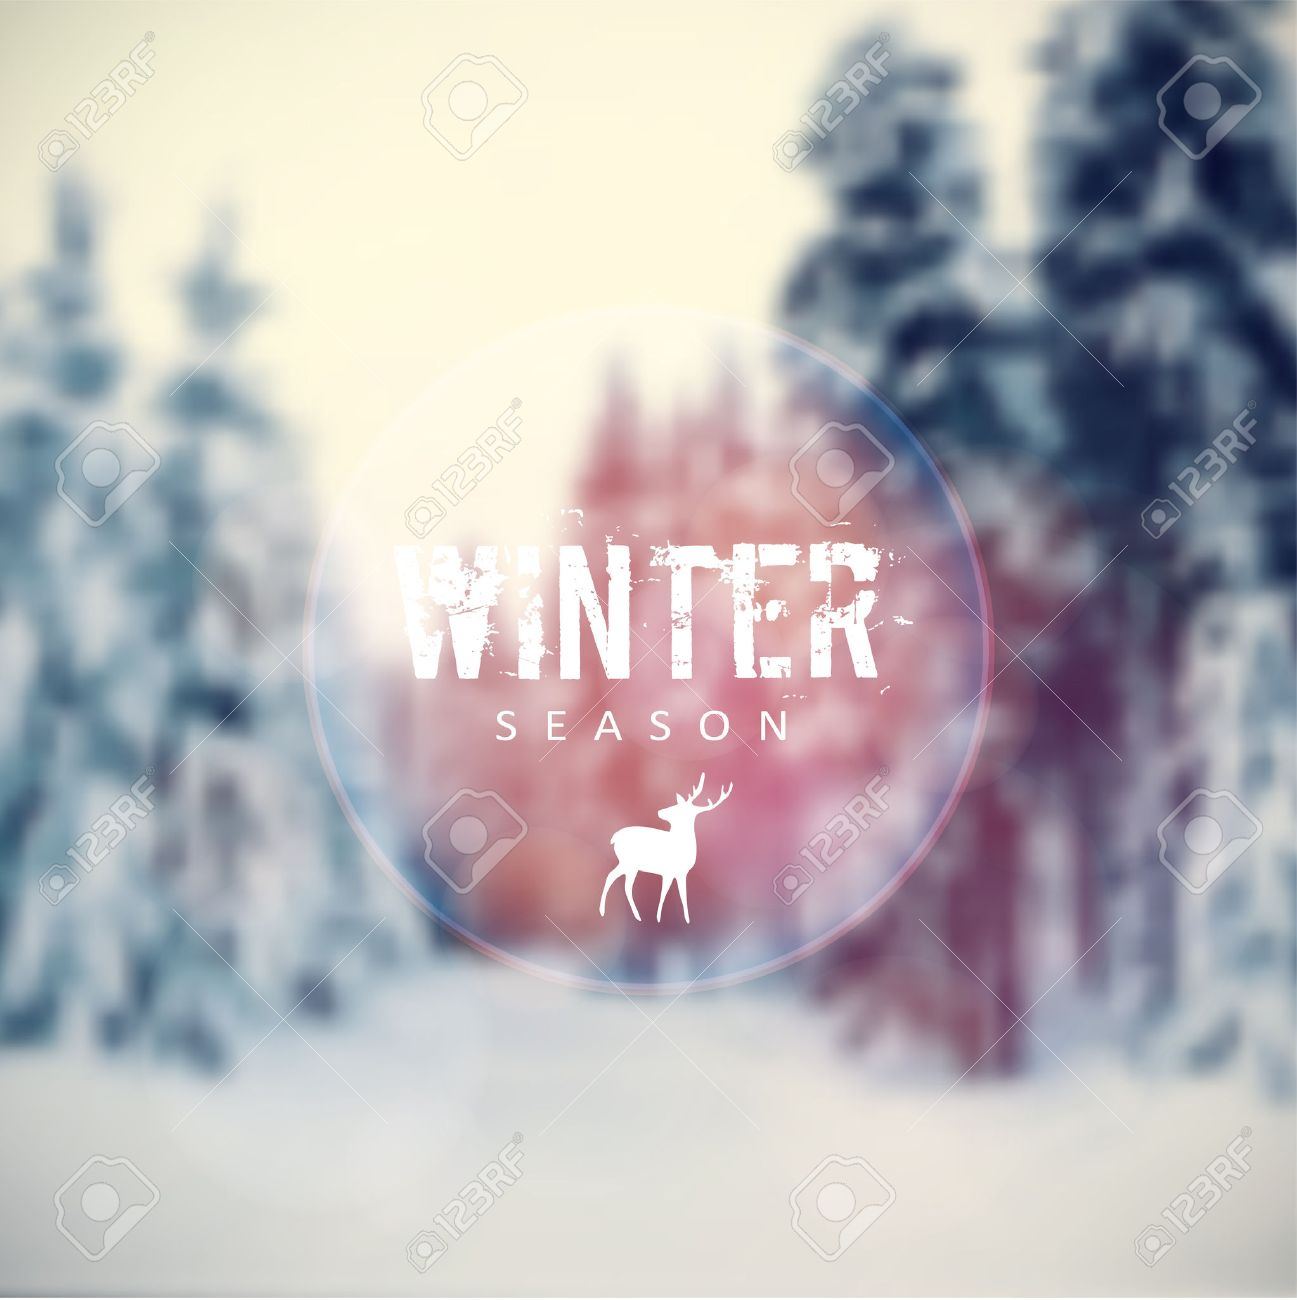 Christmas card with blurred winter landscape with snow covered trees and reindeer icon, vector illustration background - 47657269